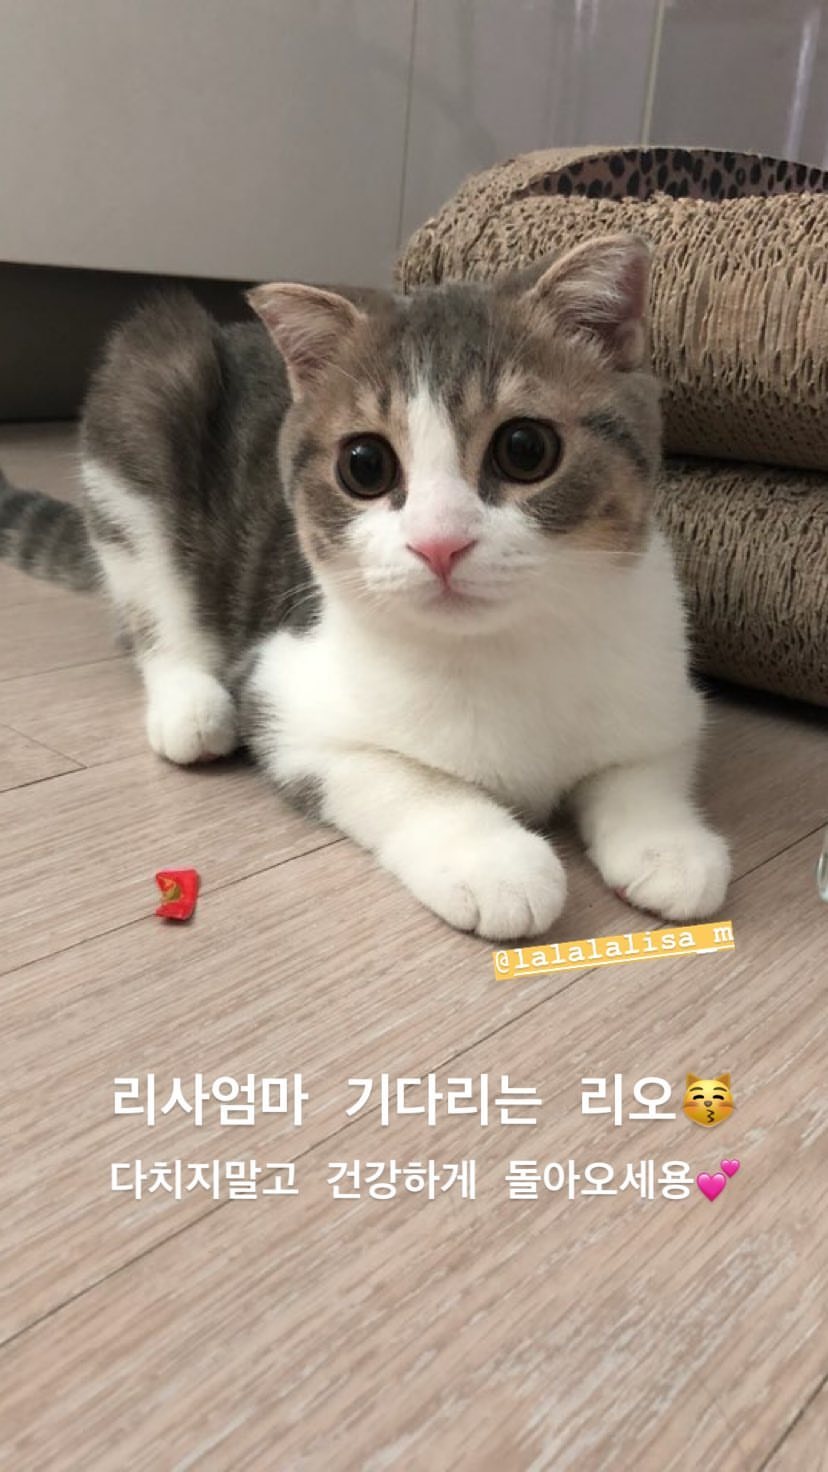 BLACKPINK Jisoo Instagram Story 30 July 2018 Leo Lisa